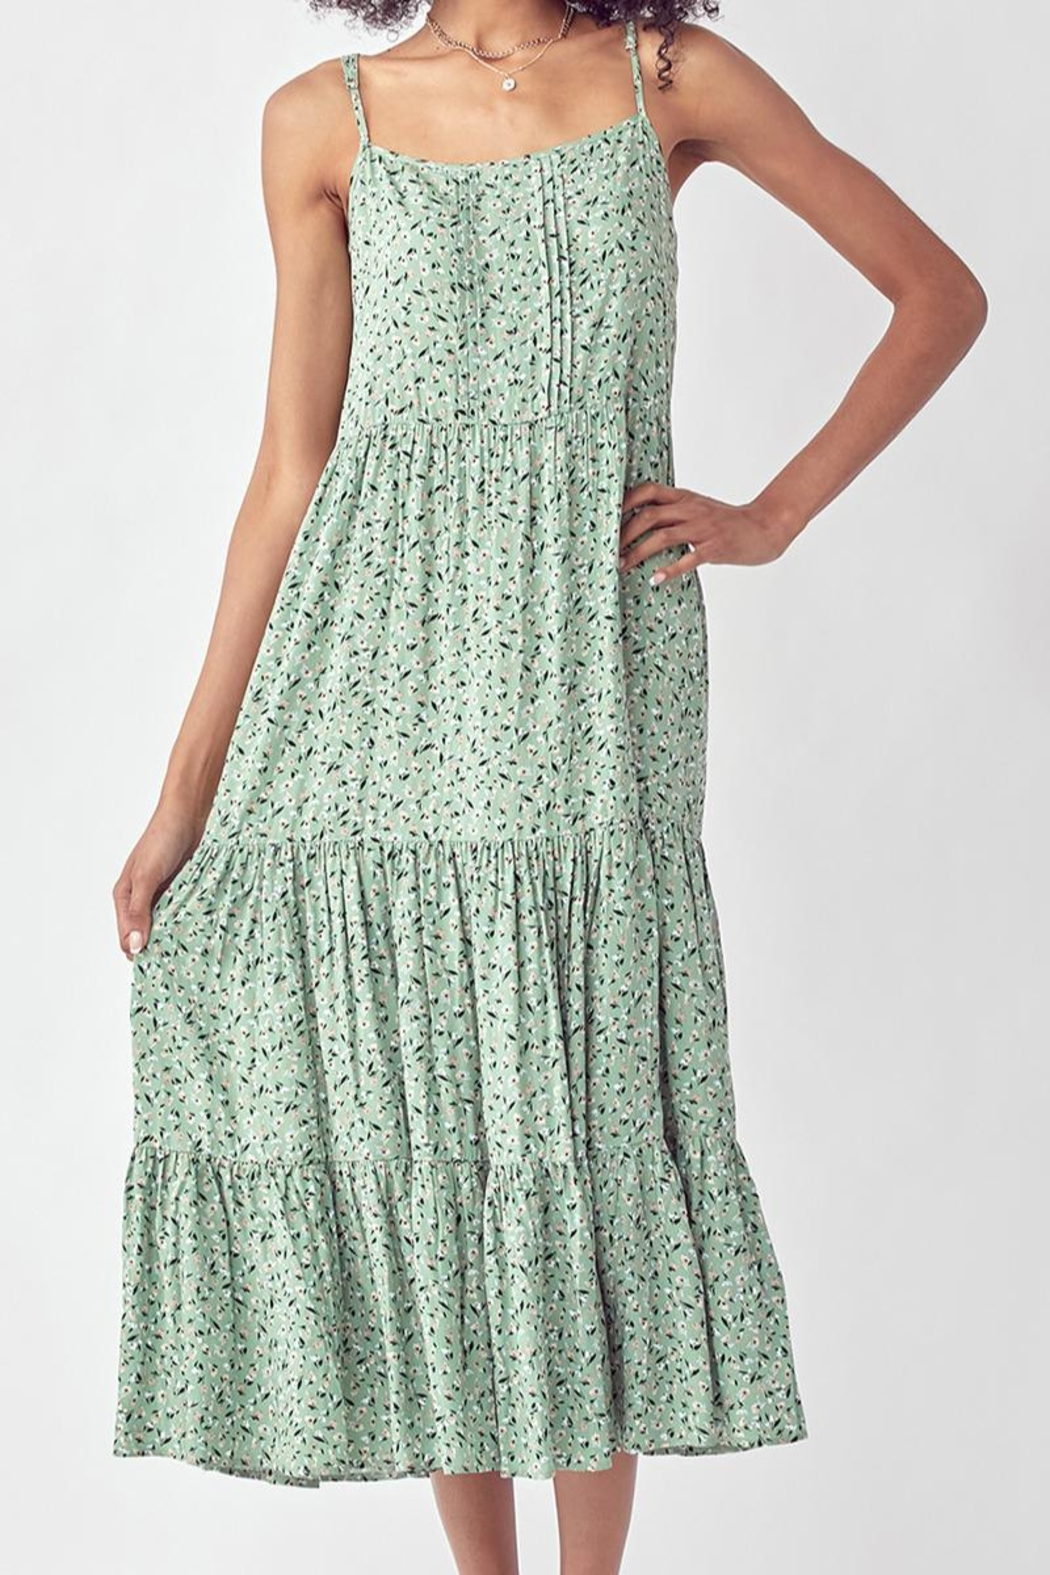 Mint Cloud Boutique Floral Ruffle Tiered Maxi Dress - Main Image